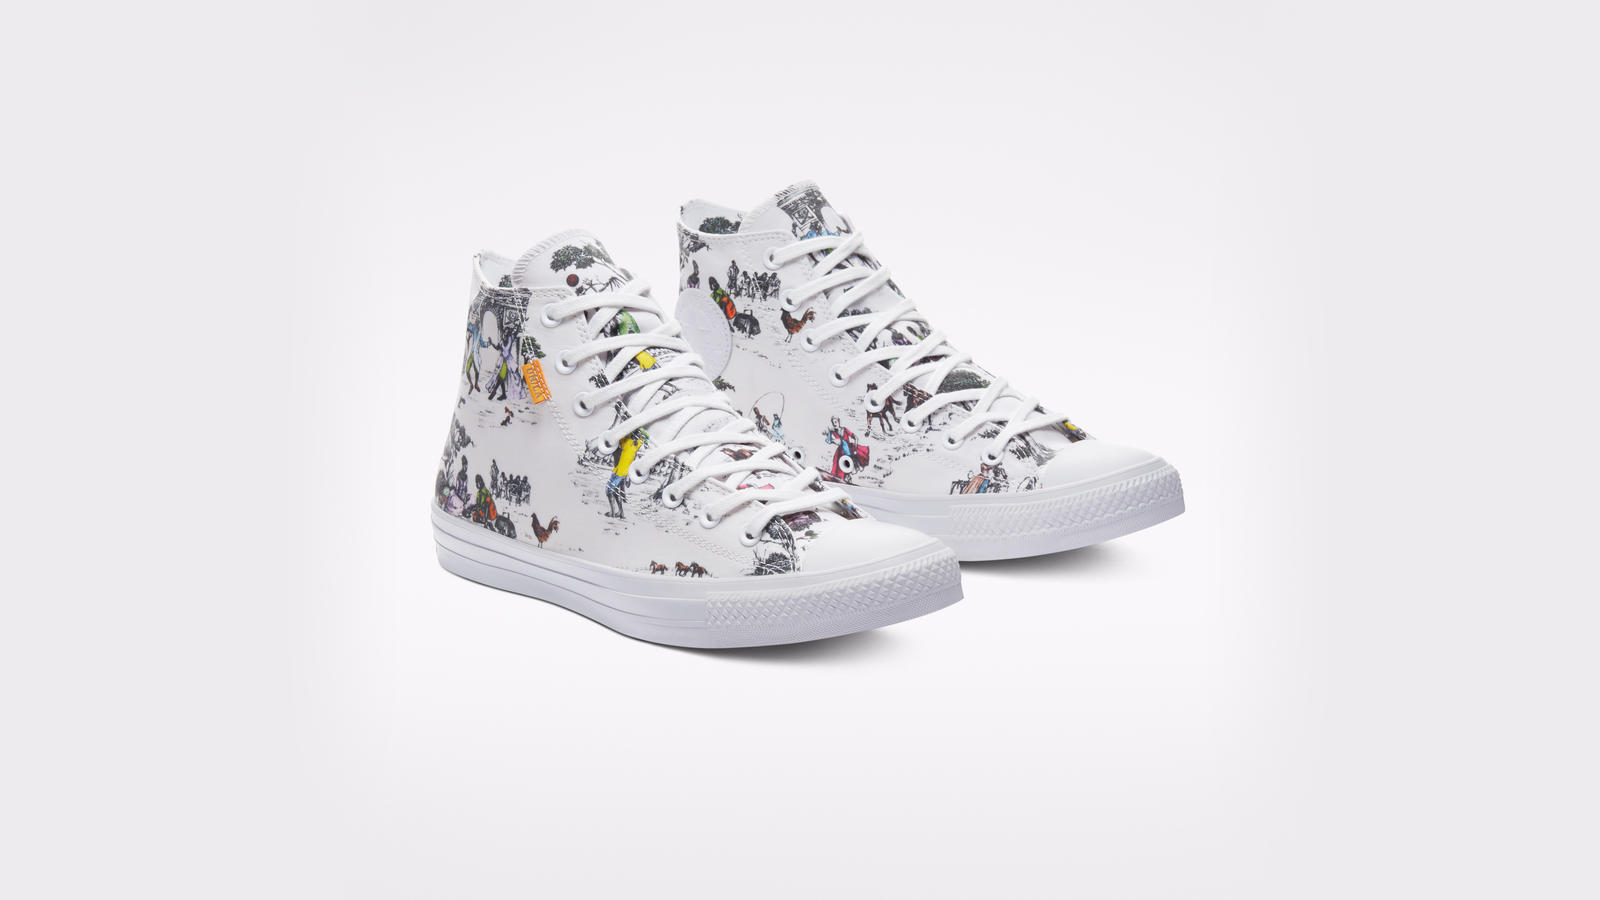 converse-x-union-x-sheila-bridges-harlem-toile-collaboration